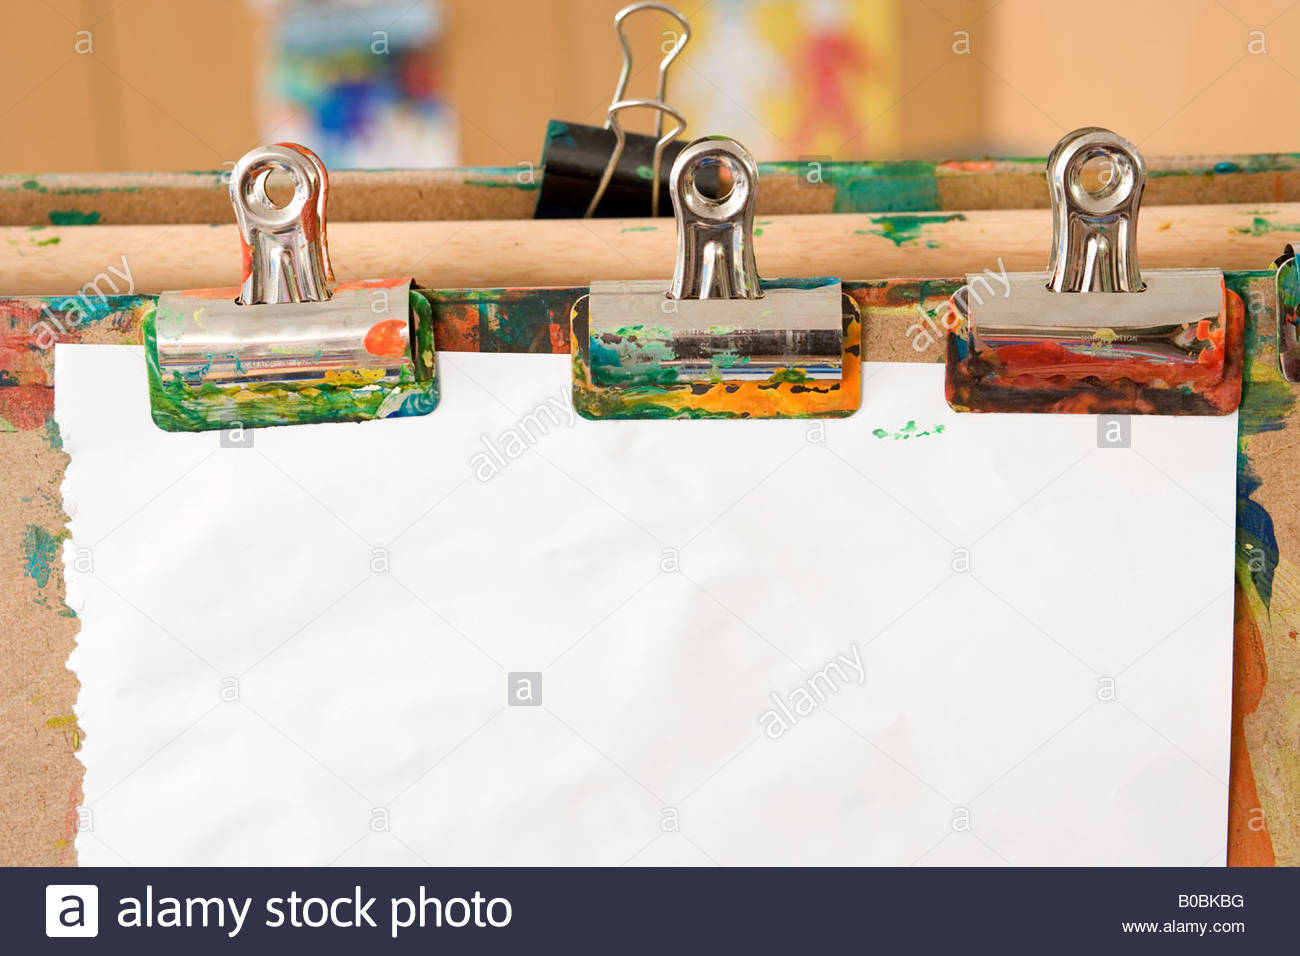 Paper clipped to easel - Stock Image